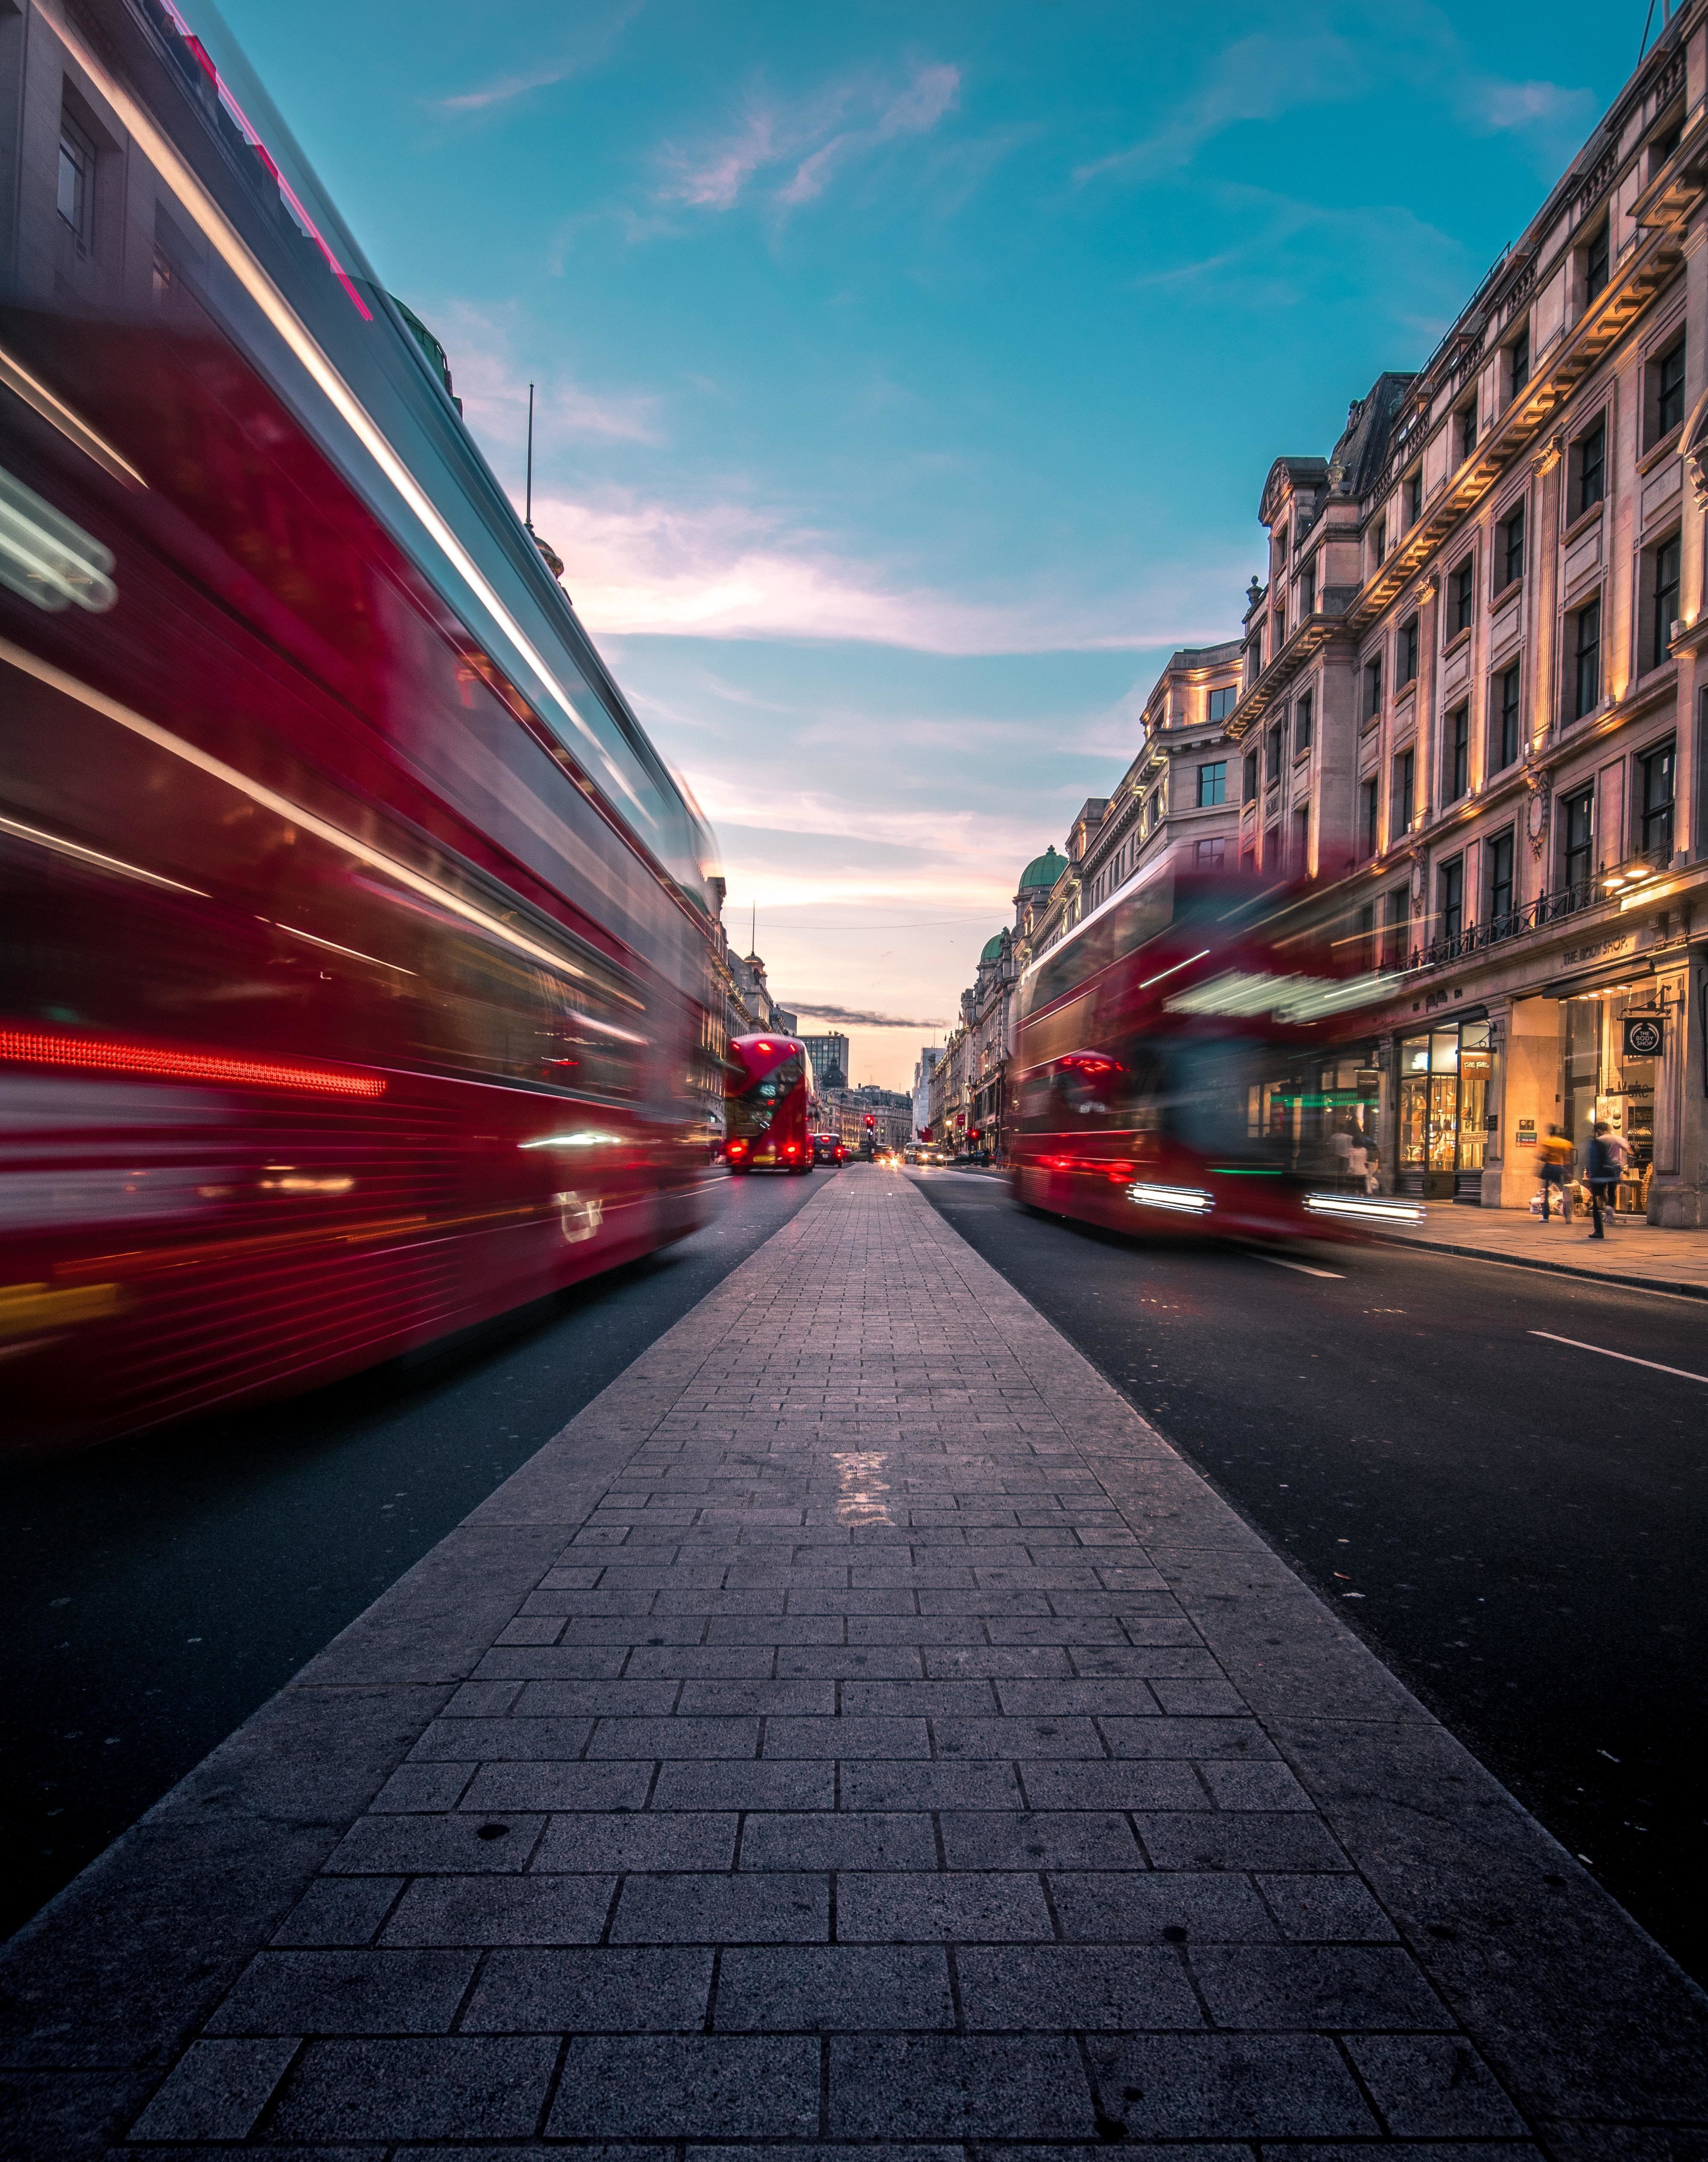 Buses travelling along Oxford St in London, United Kingdom.